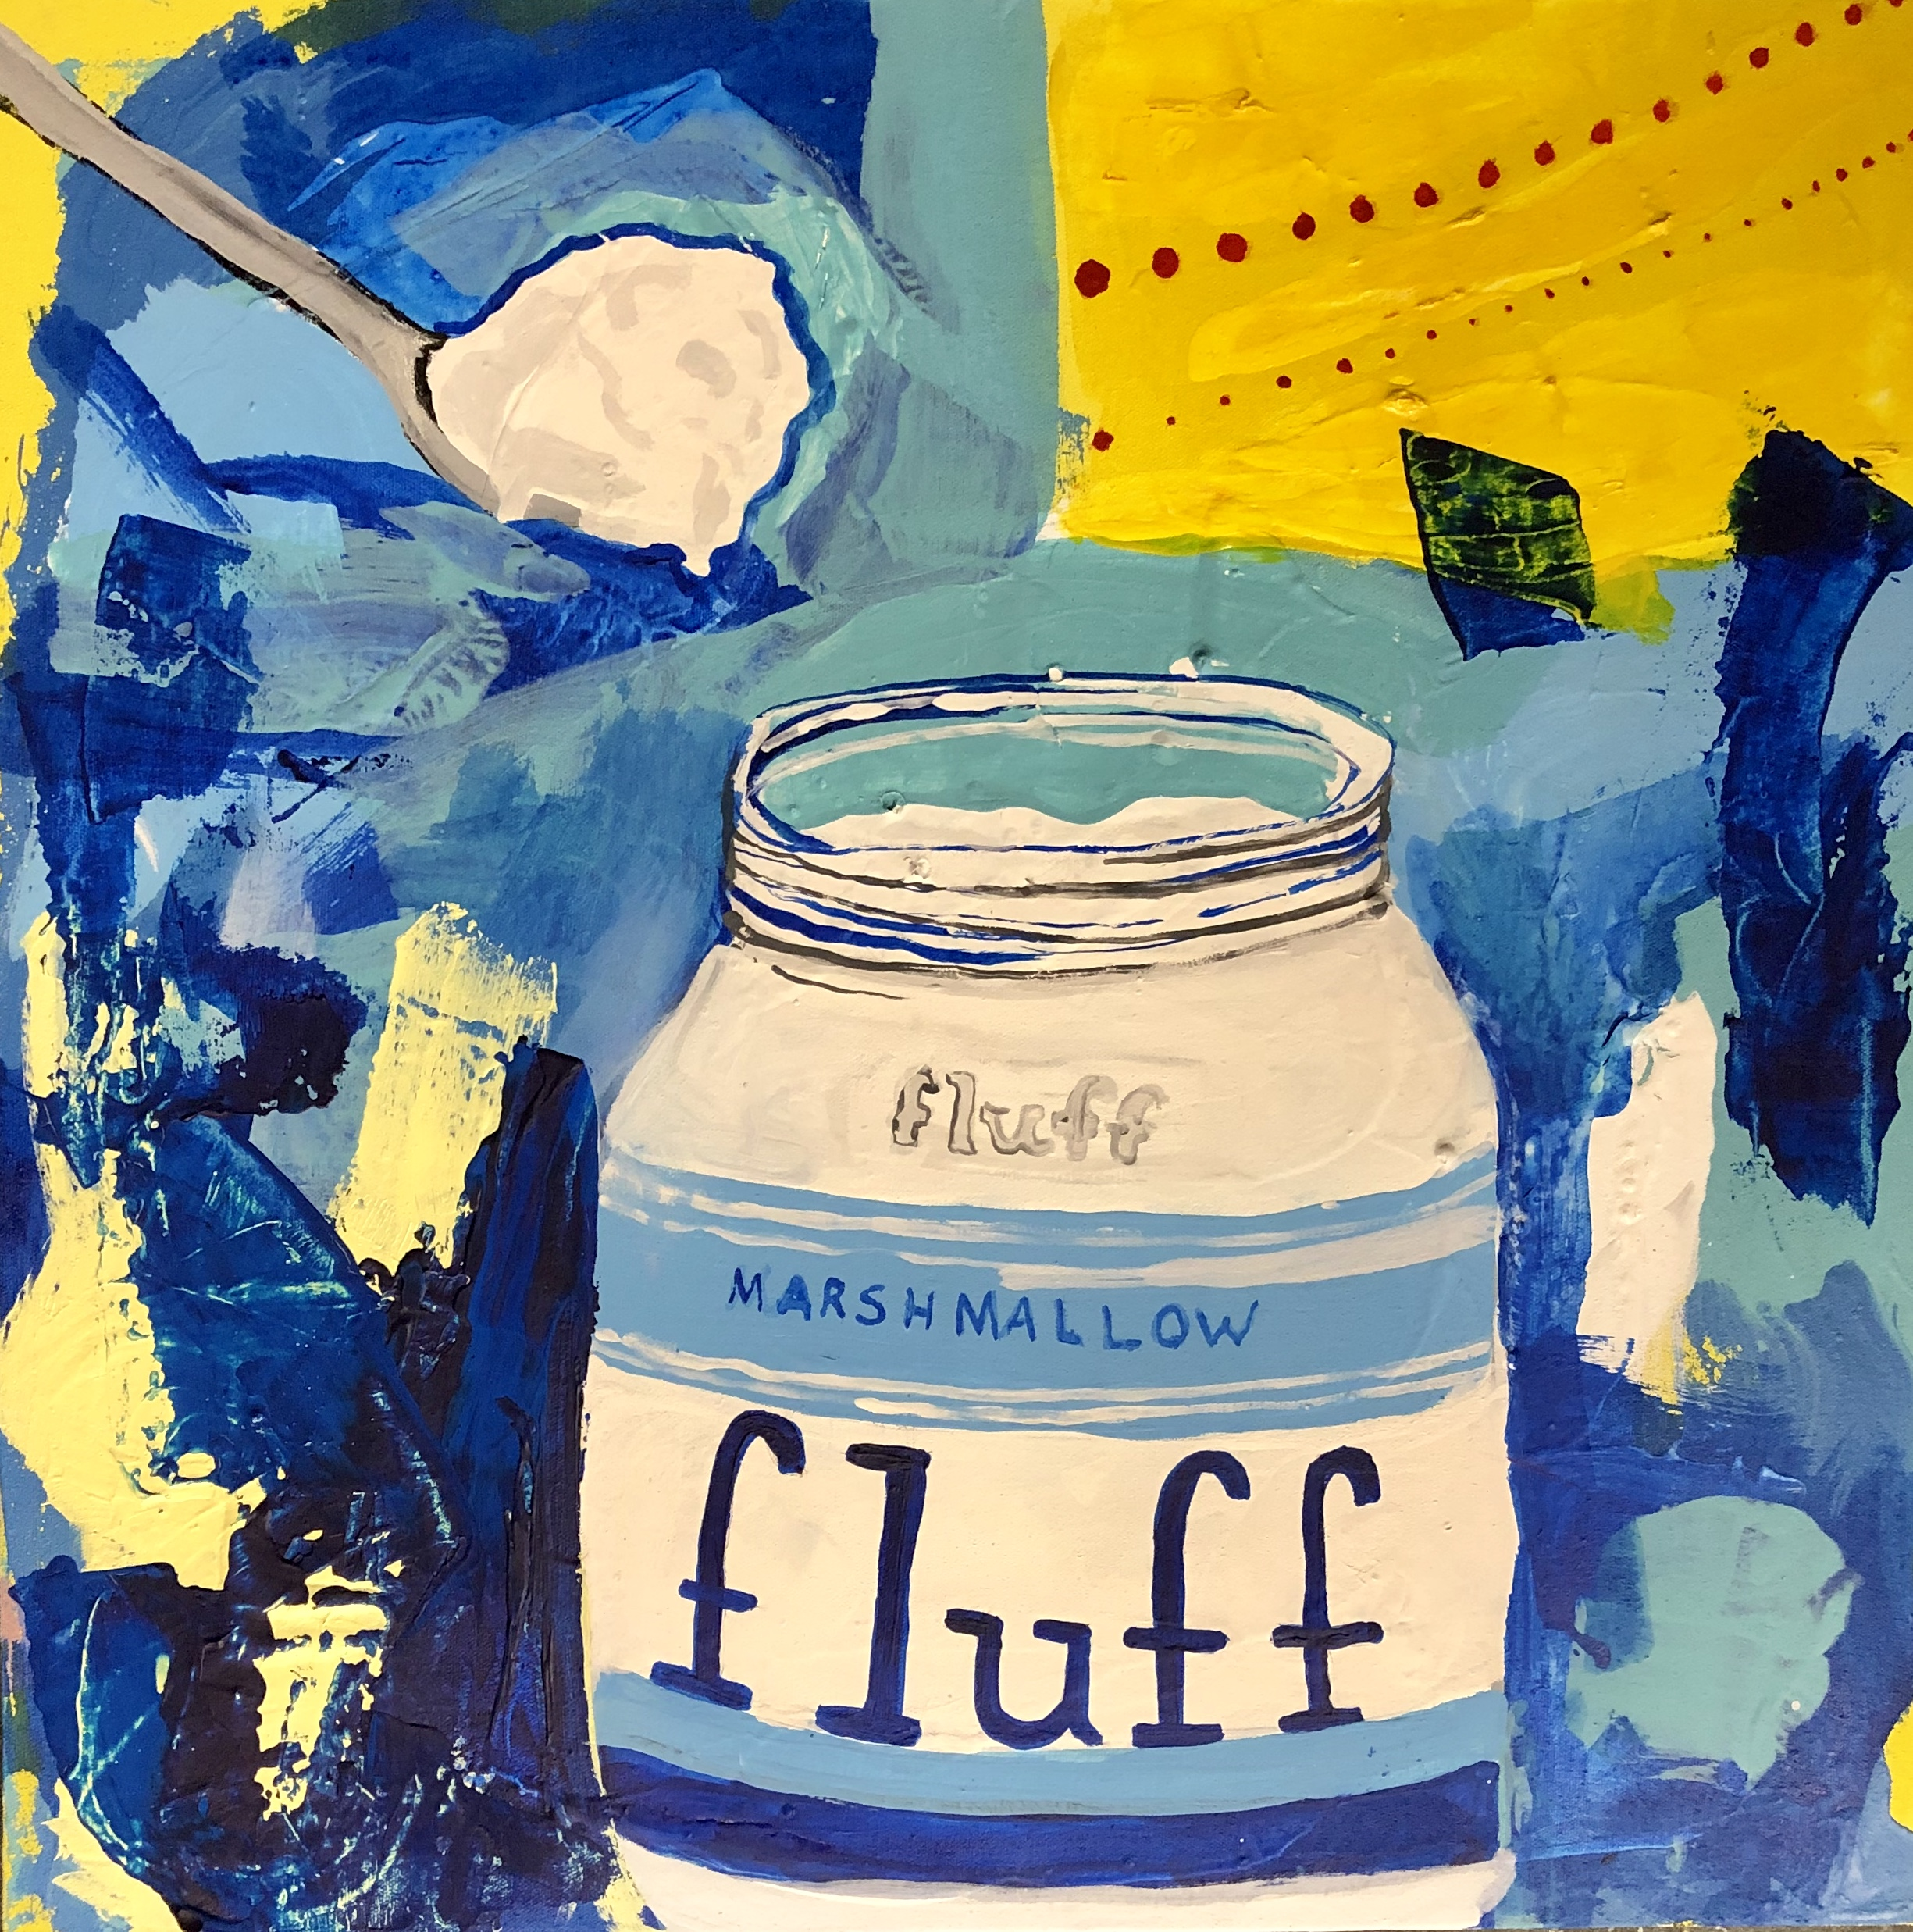 "CAMBRIDGE CANDY SERIES-MARSHMALLOW FLUFF-ACRYLIC ON CANVAS-2019-17"" X 17""-$500"